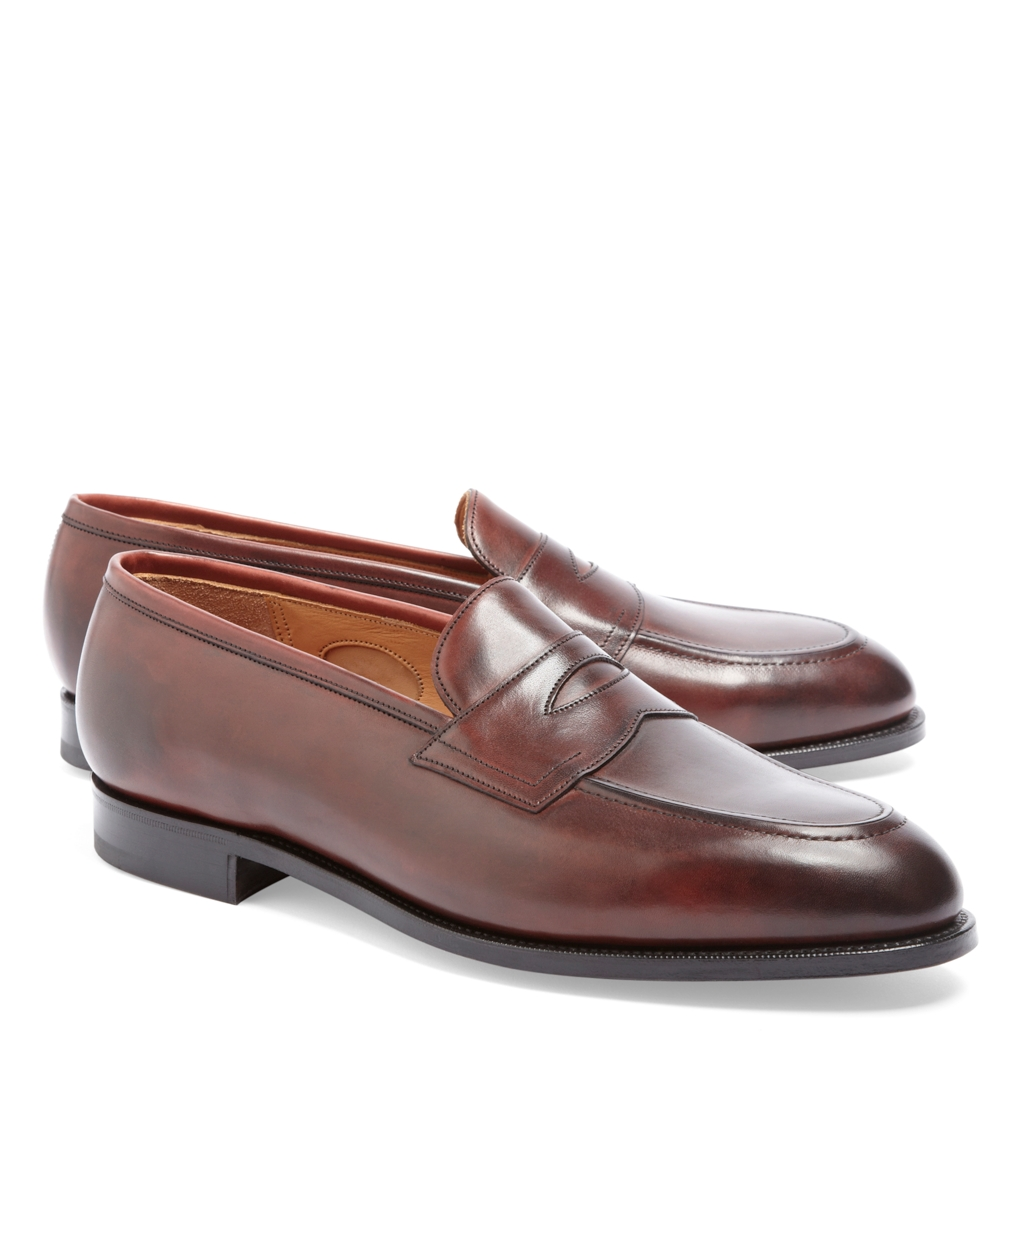 Piccadilly Shoes Men